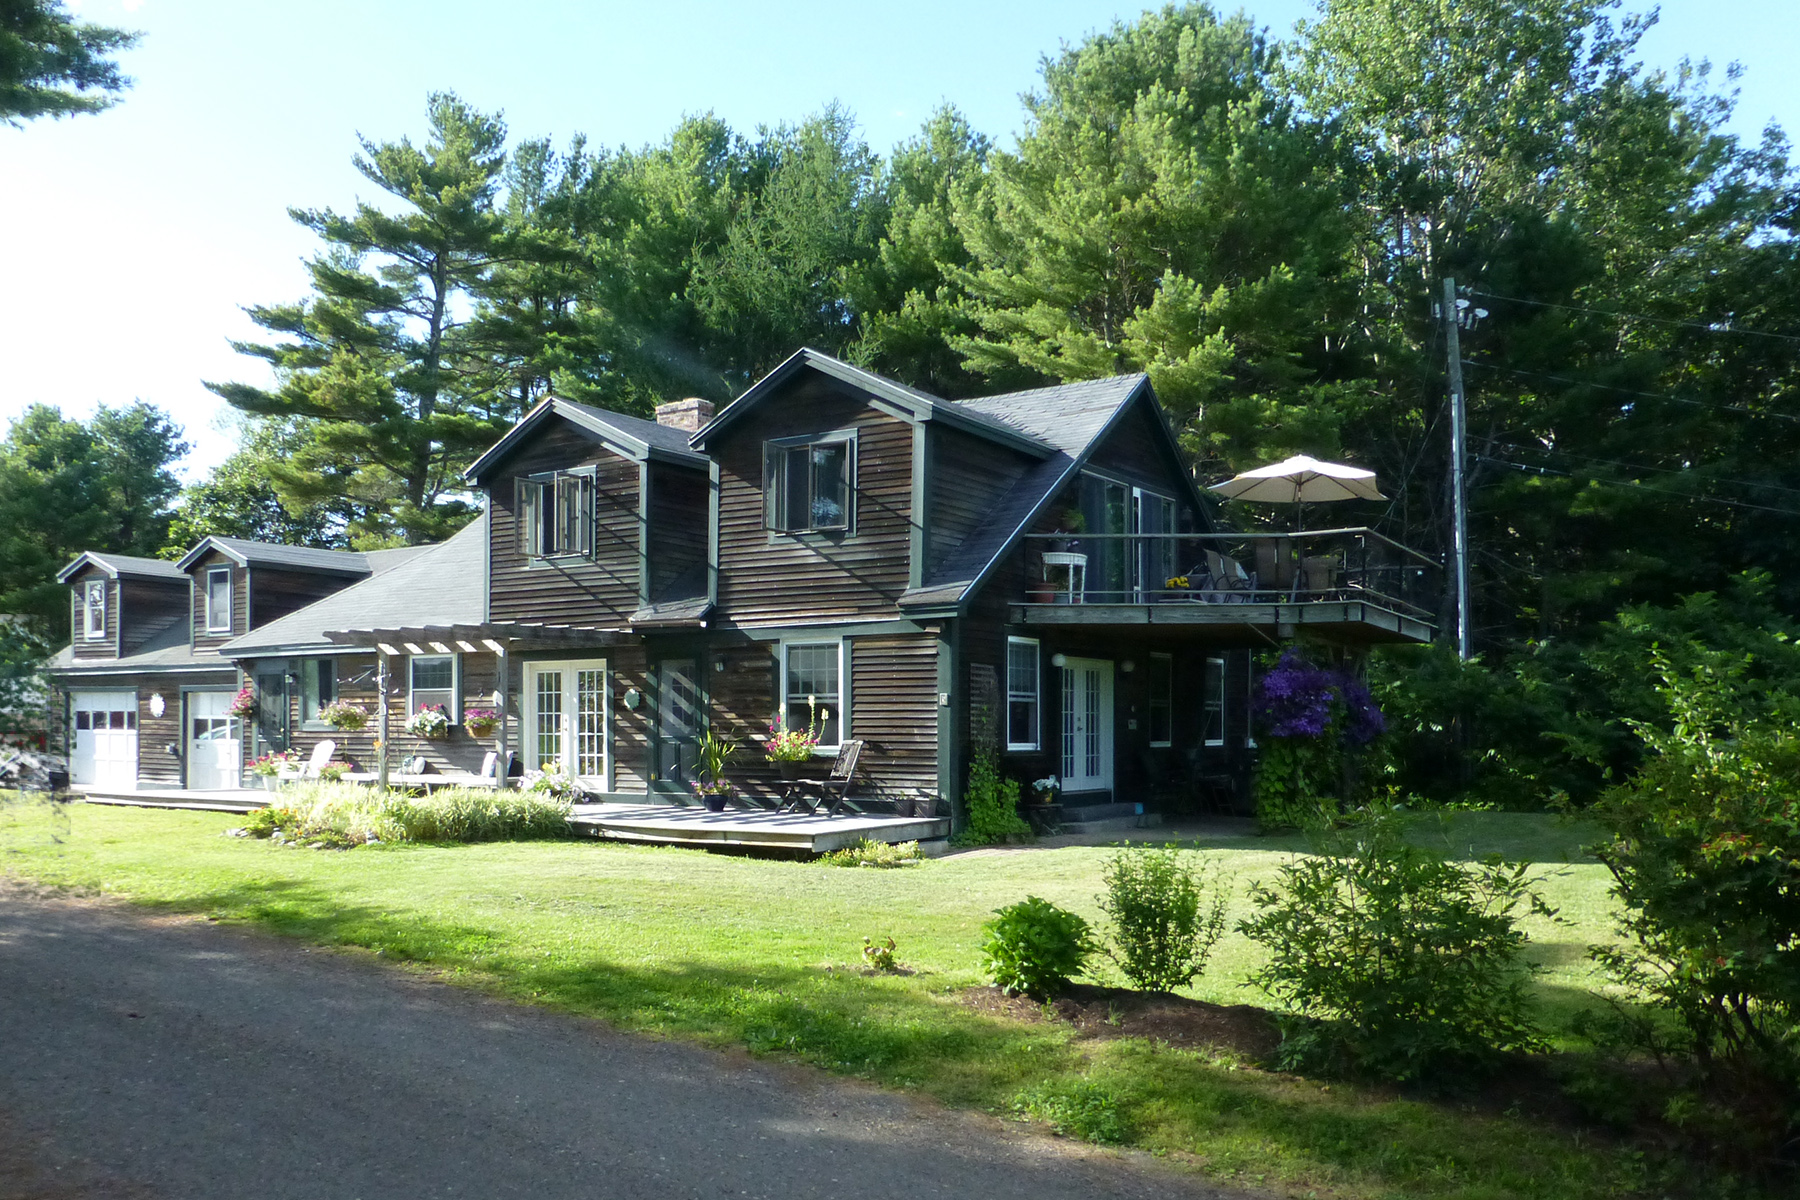 Single Family Home for Sale at Ice Pond Road 5 Ice Pond Road Boothbay, Maine 04537 United States